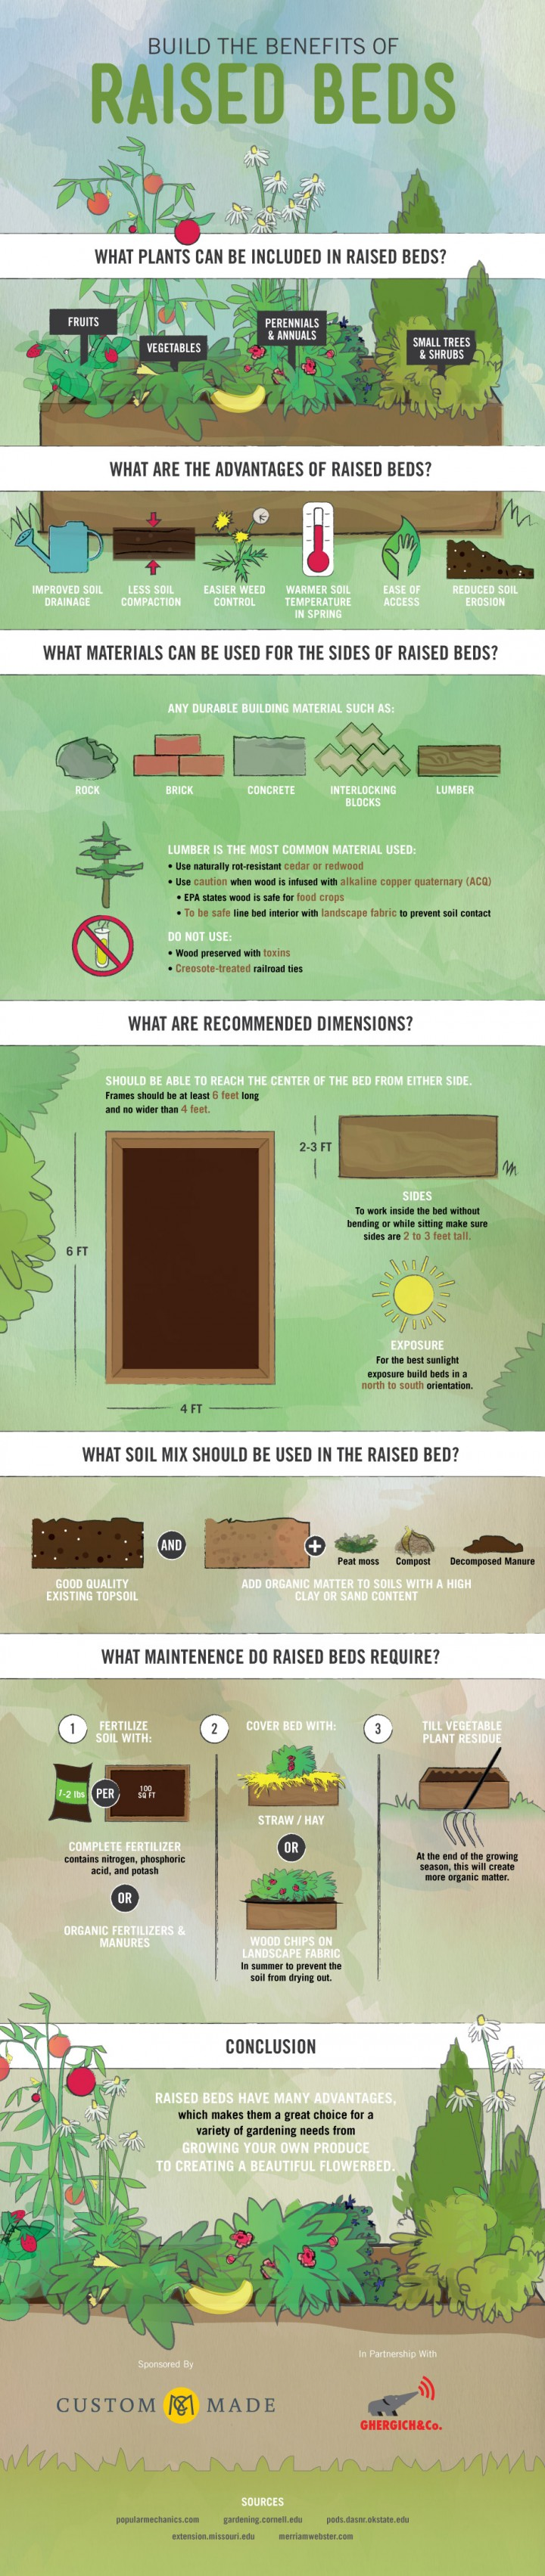 The Benefits of Gardening in Raised Beds Infographic